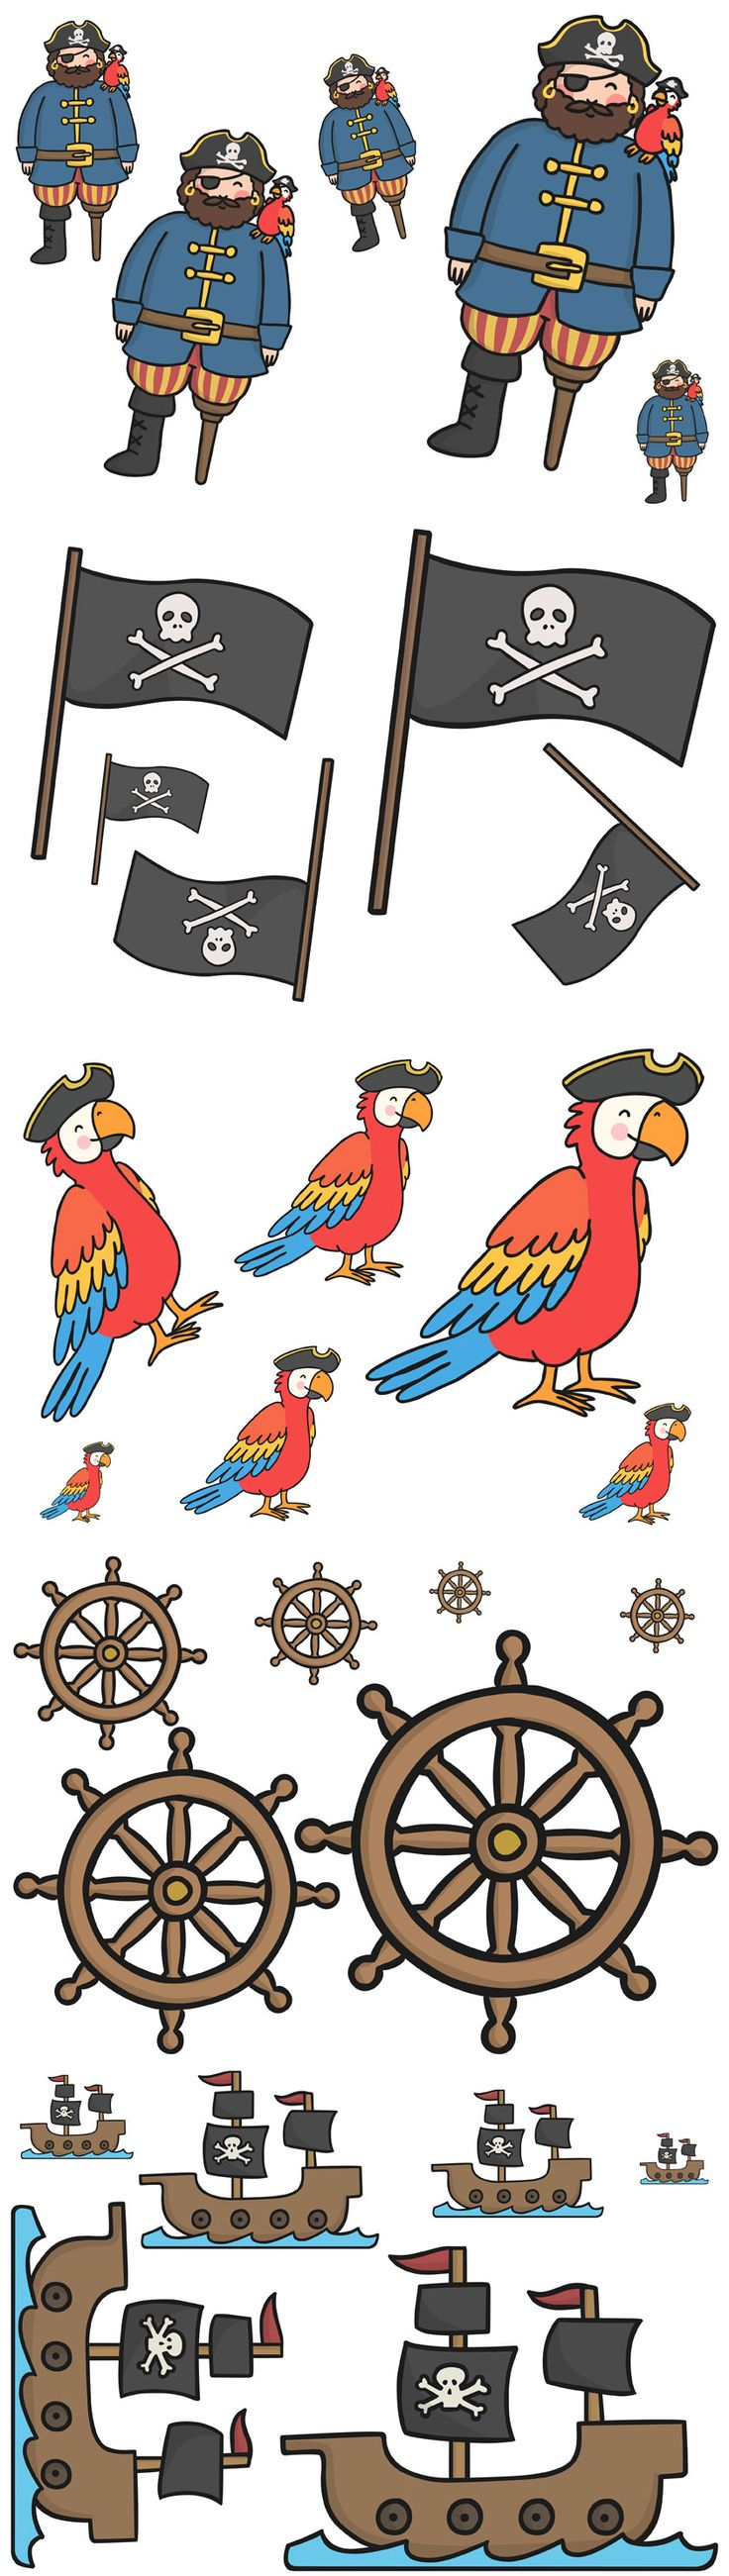 Twinkl Resources >> Pirate Size Ordering Activity  >> Thousands of printable primary teaching resources for EYFS, KS1, KS2 and beyond! pirate size ordering, size ordering activity, pirate ordering, cut out fun, size ordering, pirate themed,